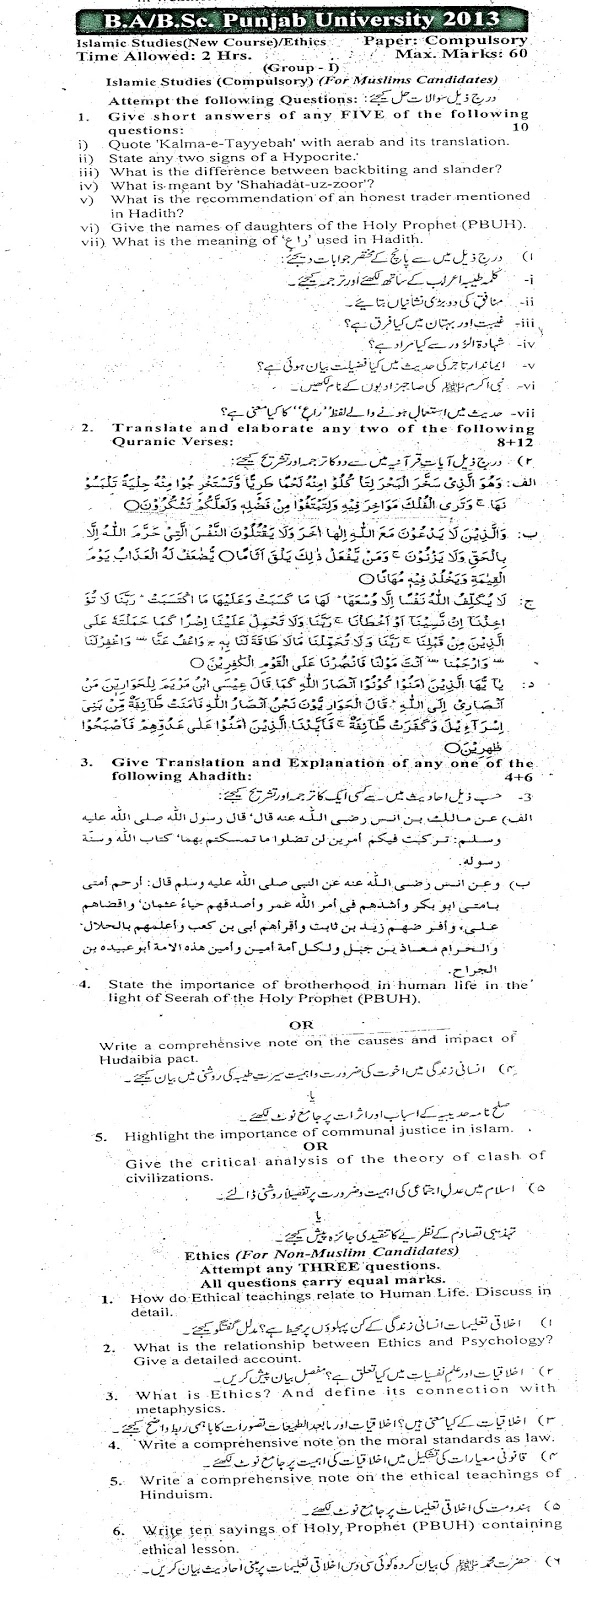 ba punjab university islamic studies past papers